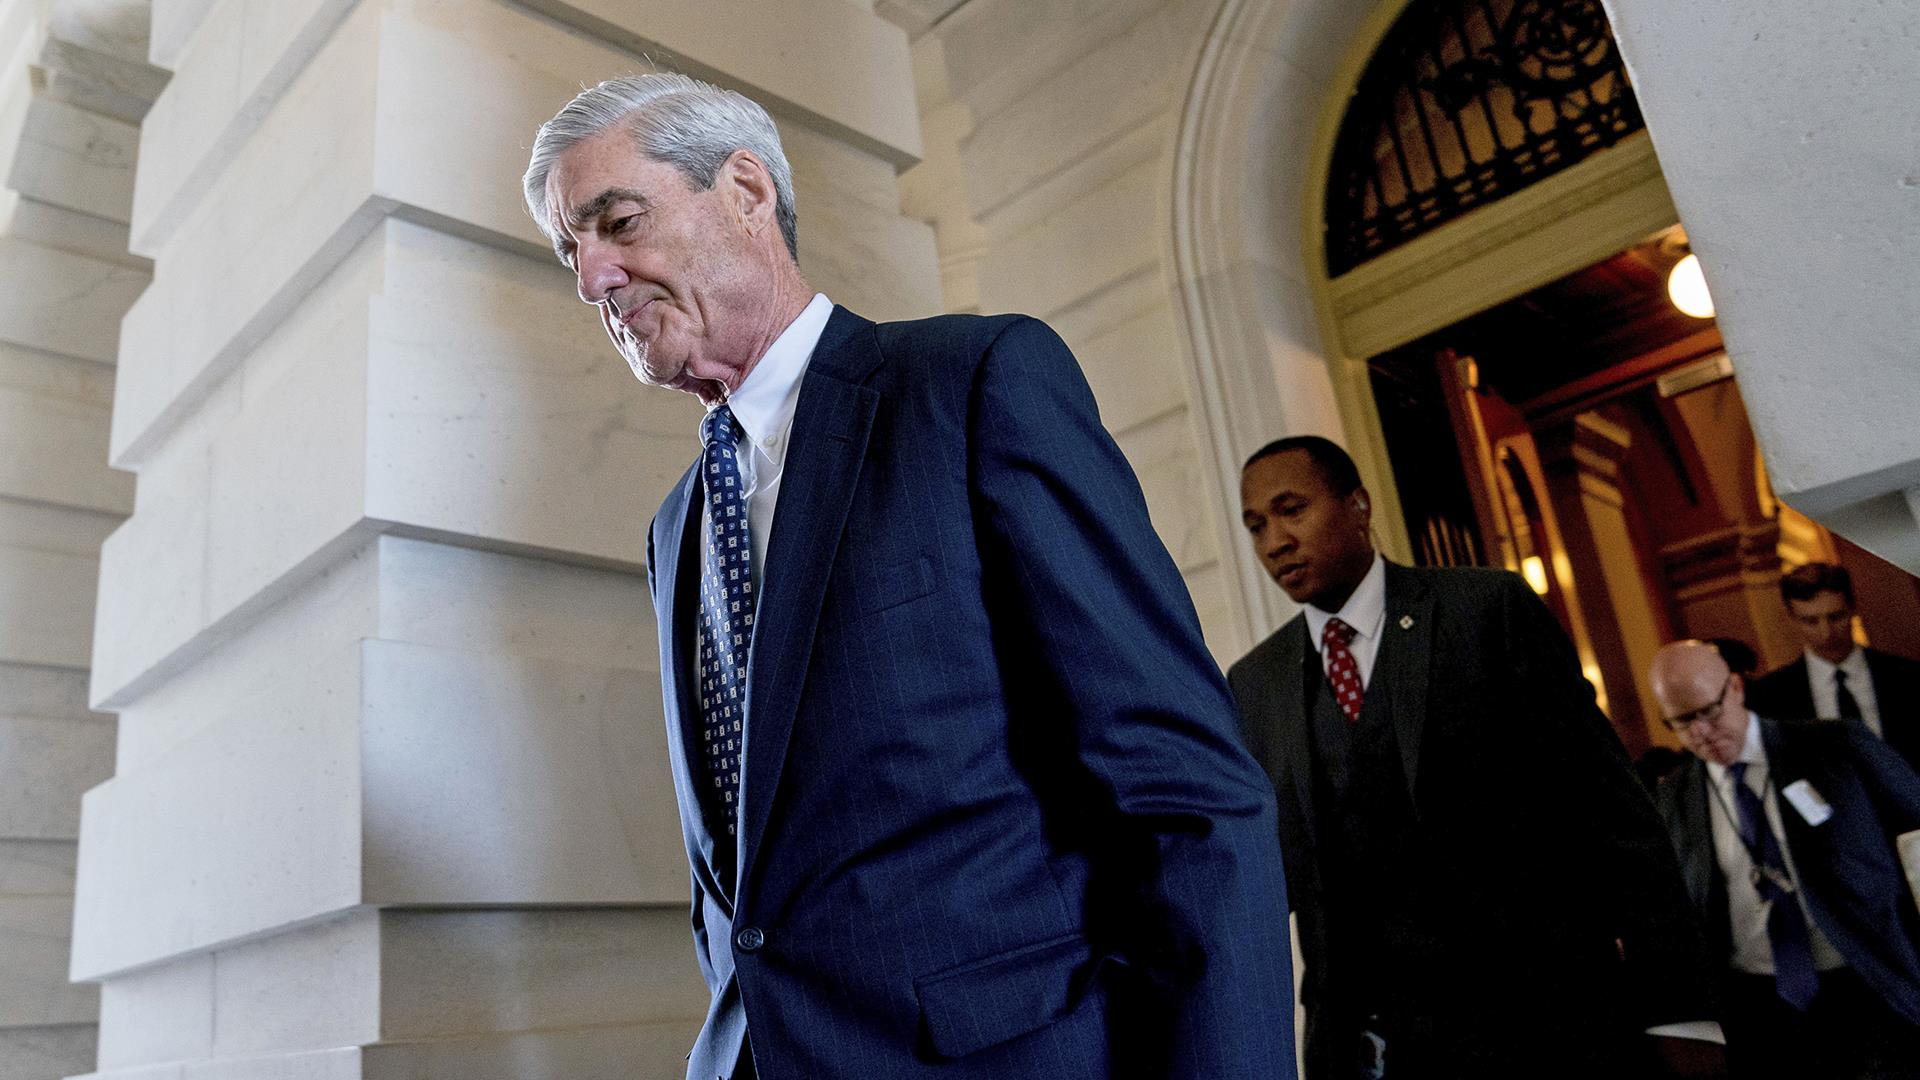 Mueller report shows he chose not to charge Trump because obstruction was in plain view